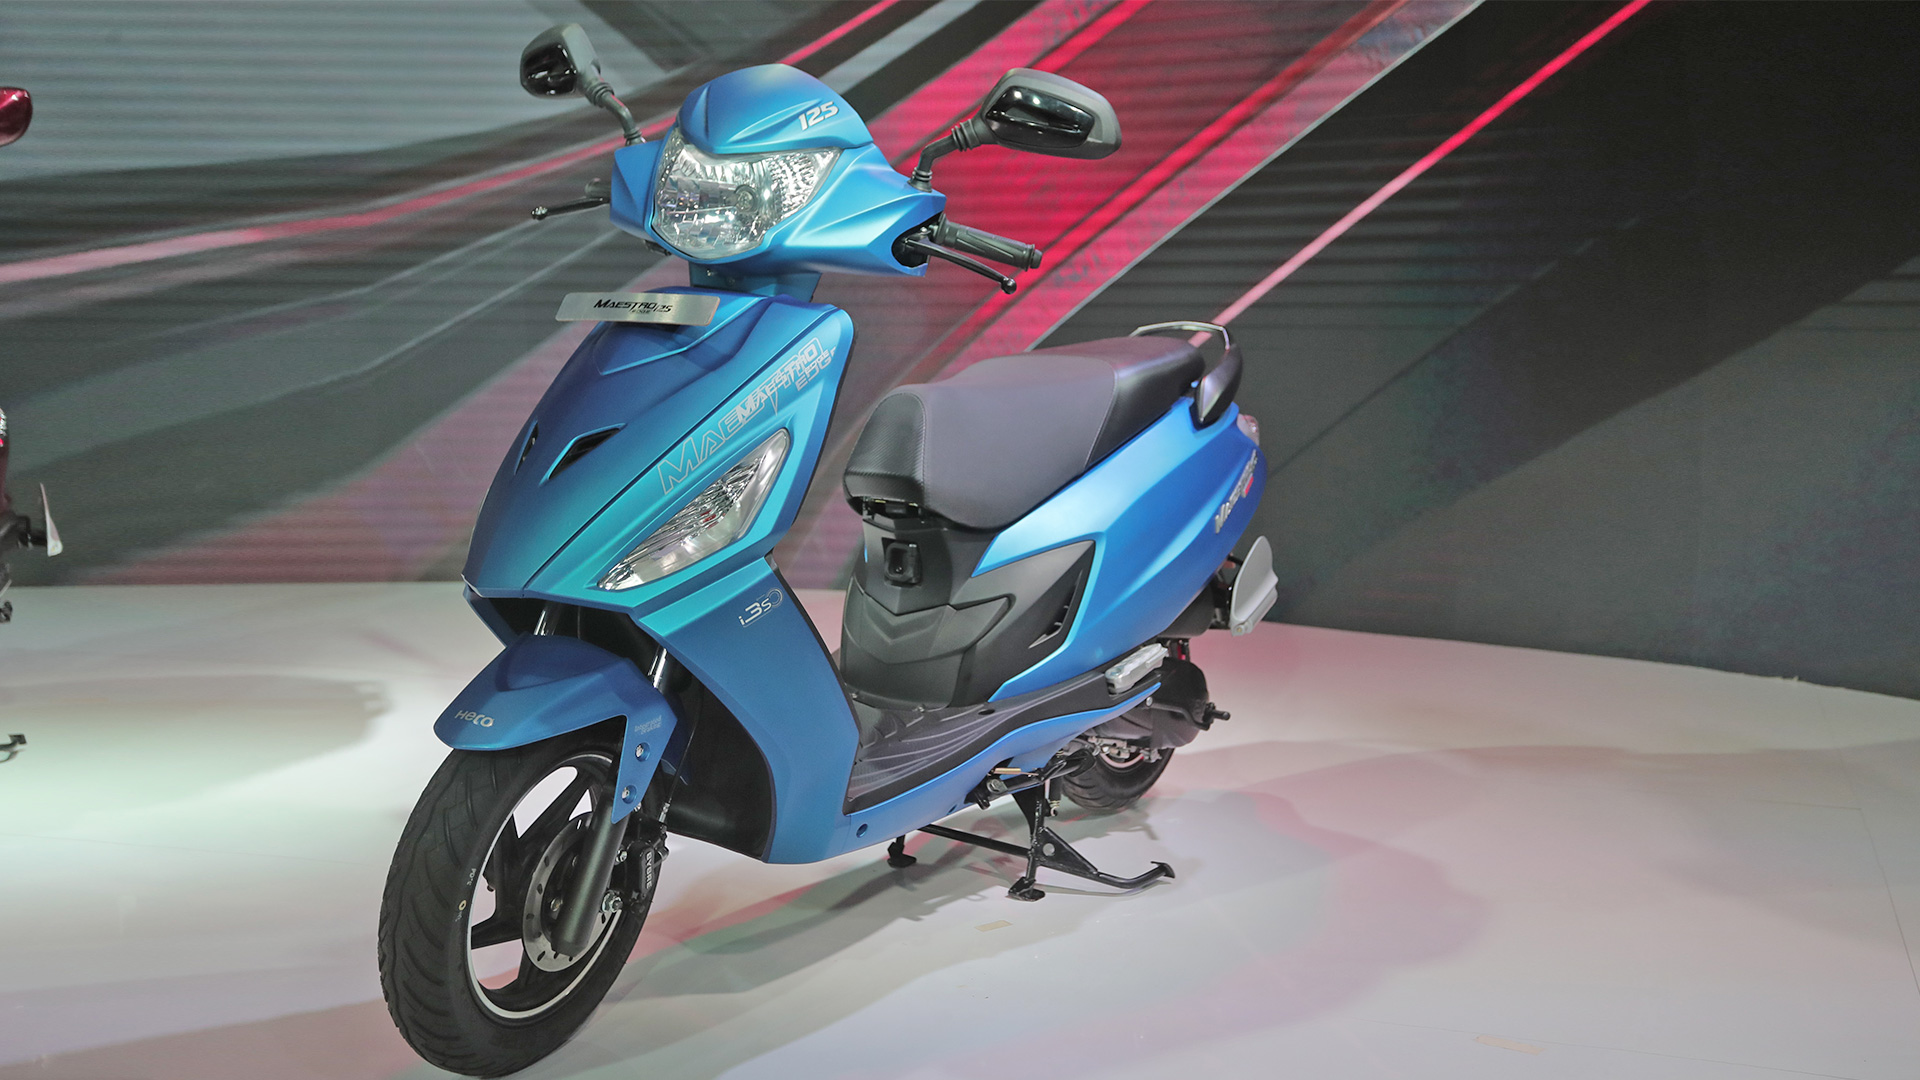 Hero Maestro Edge 2018 ZX - Front three quarter view